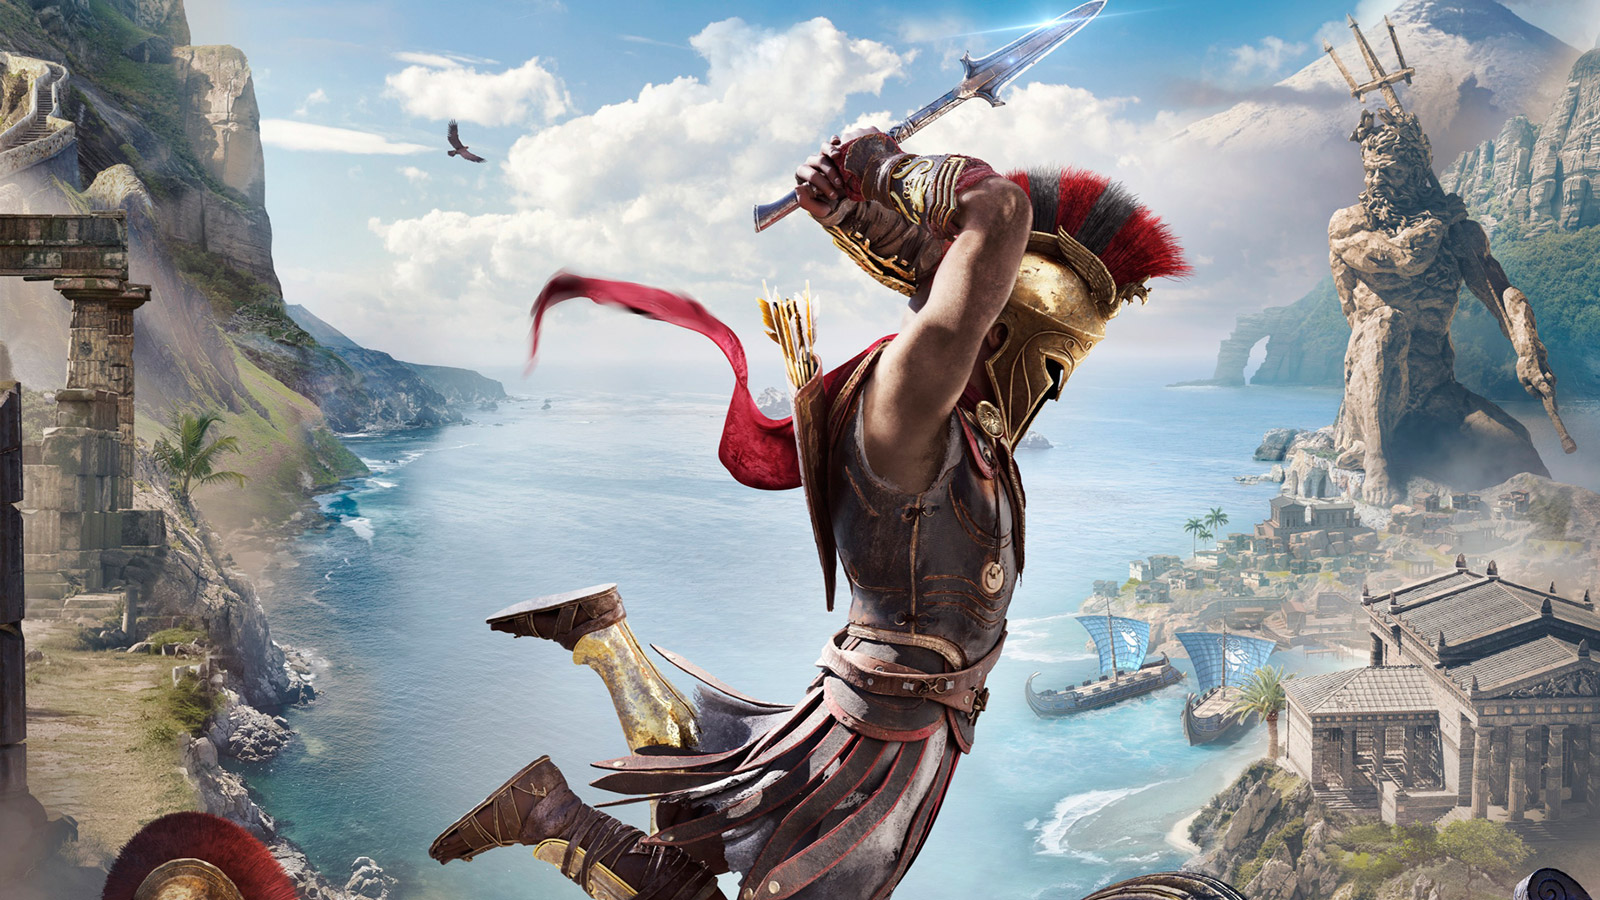 Free Assassin's Creed Odyssey Wallpaper in 1600x900